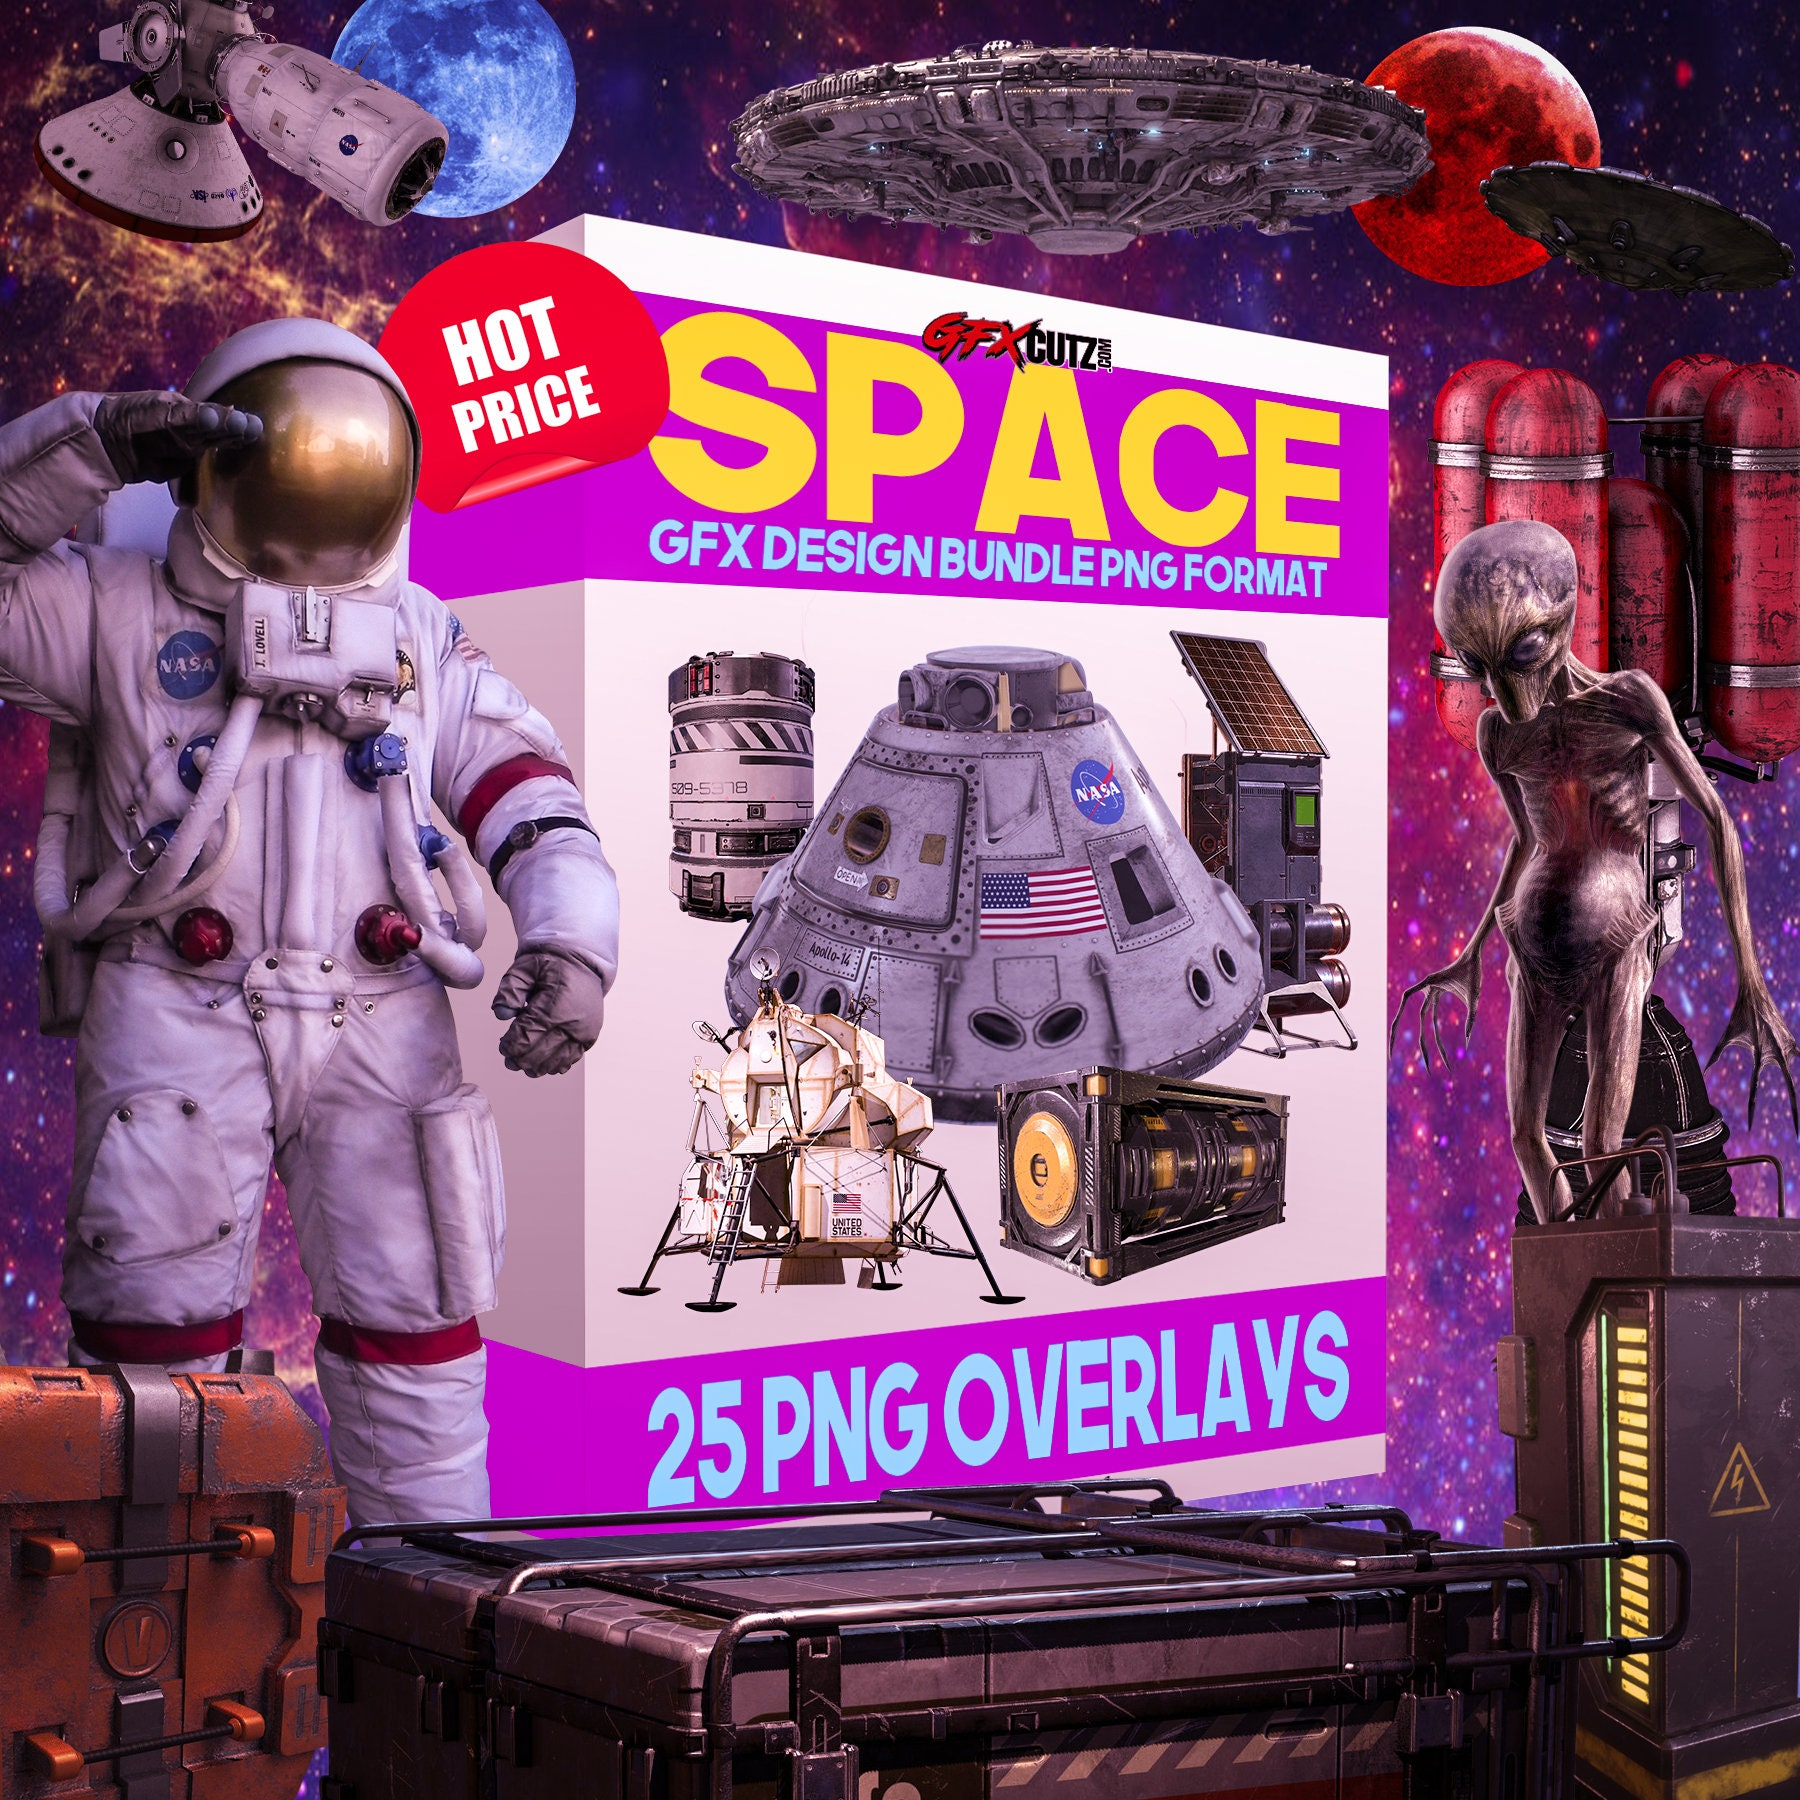 Space Overlays for Photoshop In Png Format For Your Photo